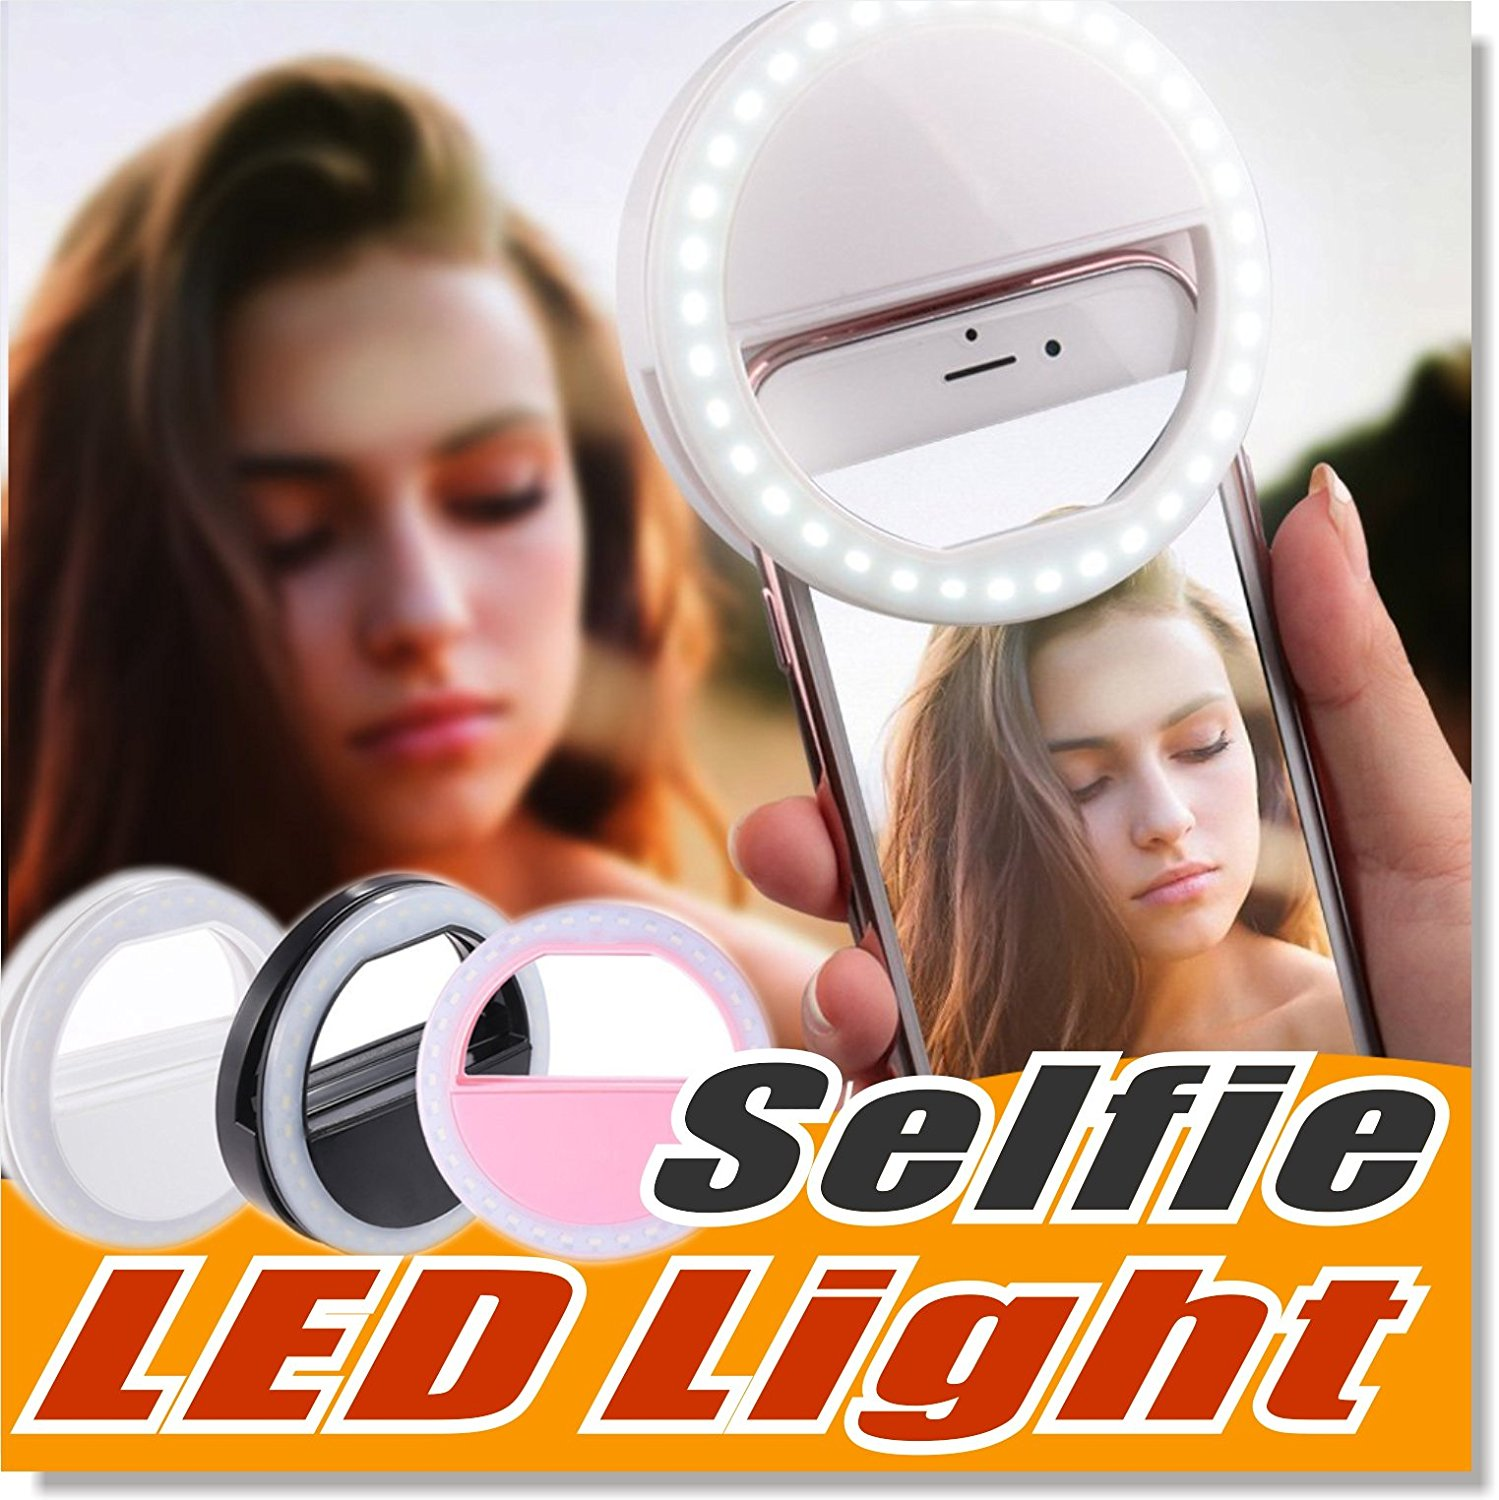 Selfie Light LED Ring Fill Light Supplementary Lighting Camera Photography for Samsung Galaxy S8 iPhone 7 6 6s LG Sony and All Smart Phones (Black)